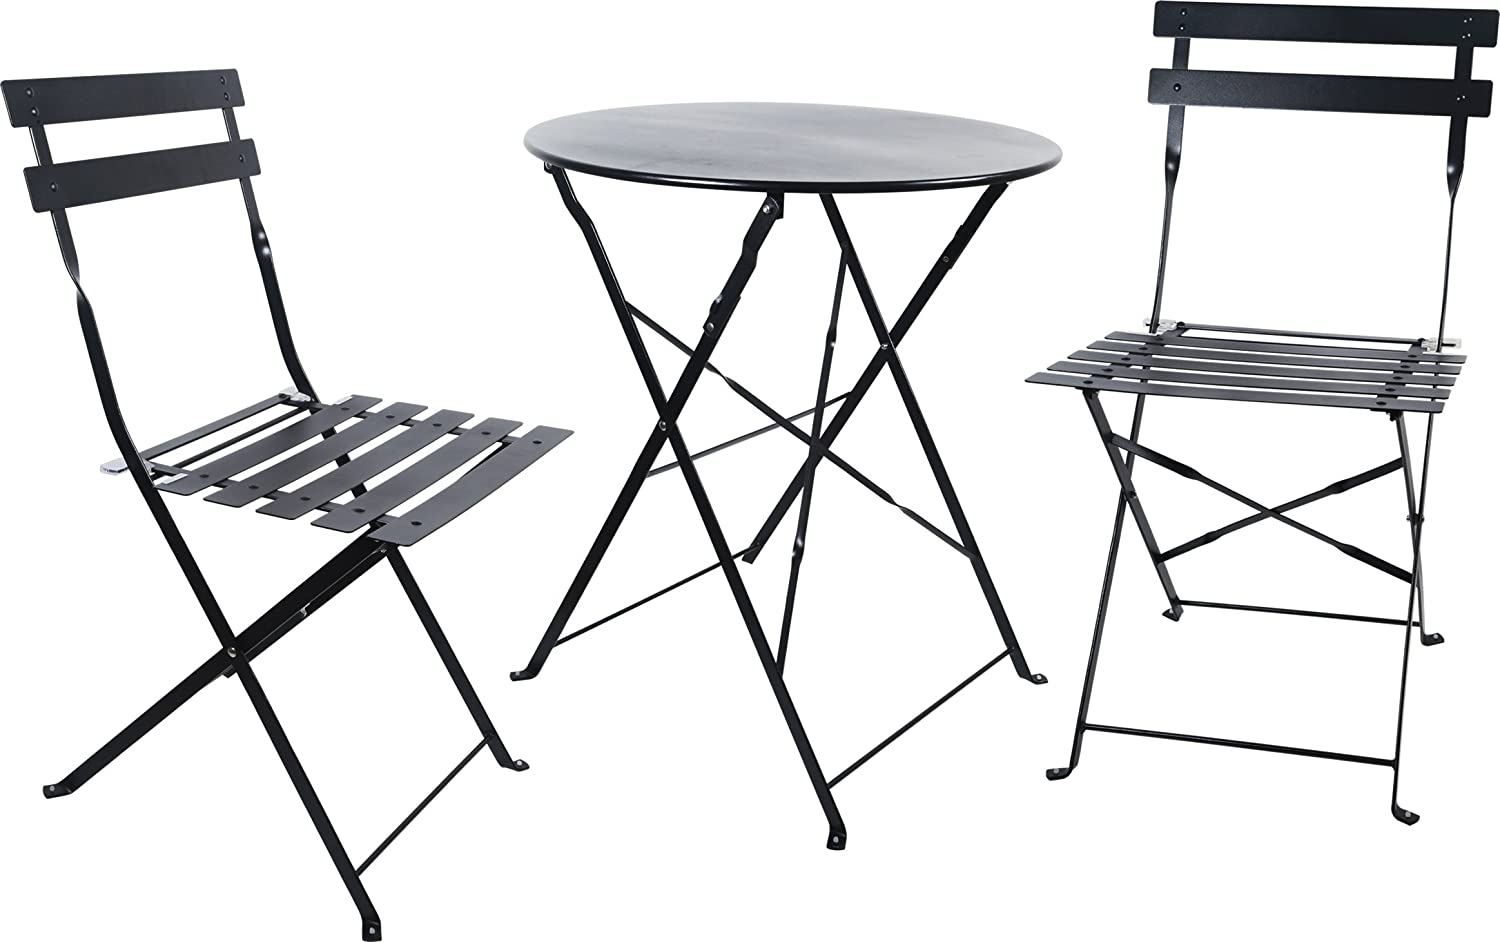 Carlota Furniture Outdoor Bistro Set, Features 1 Folding Table and 2 Folding Chairs with Safe Locks, Black, 3 Piece